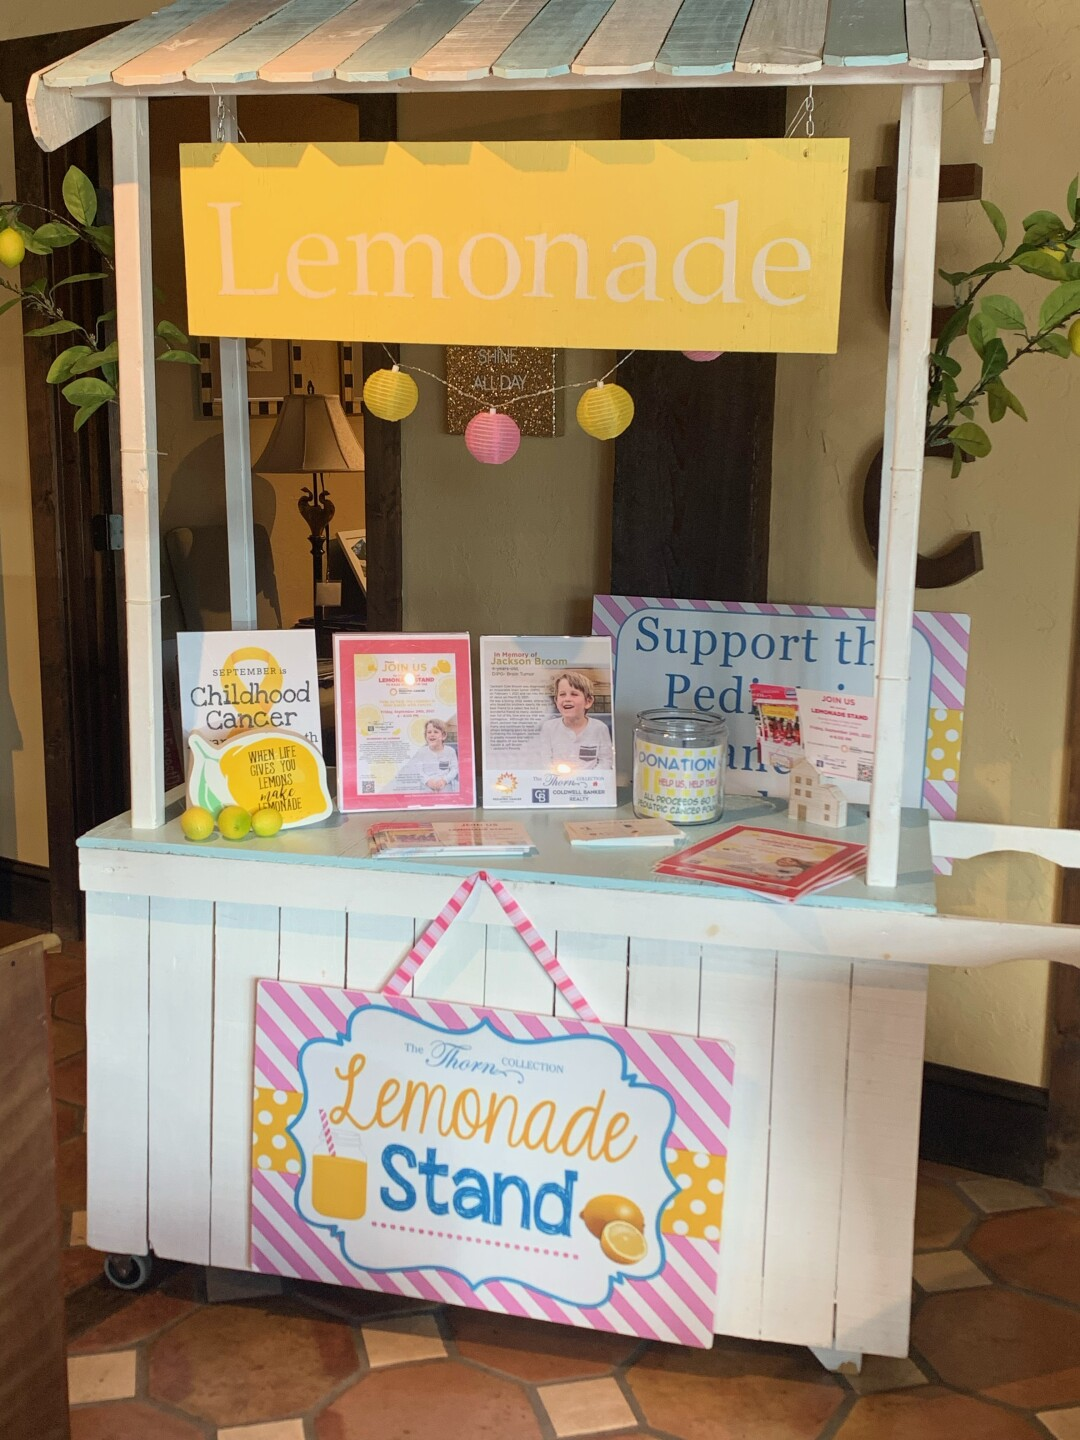 Thorn Collection lemonade stand 2